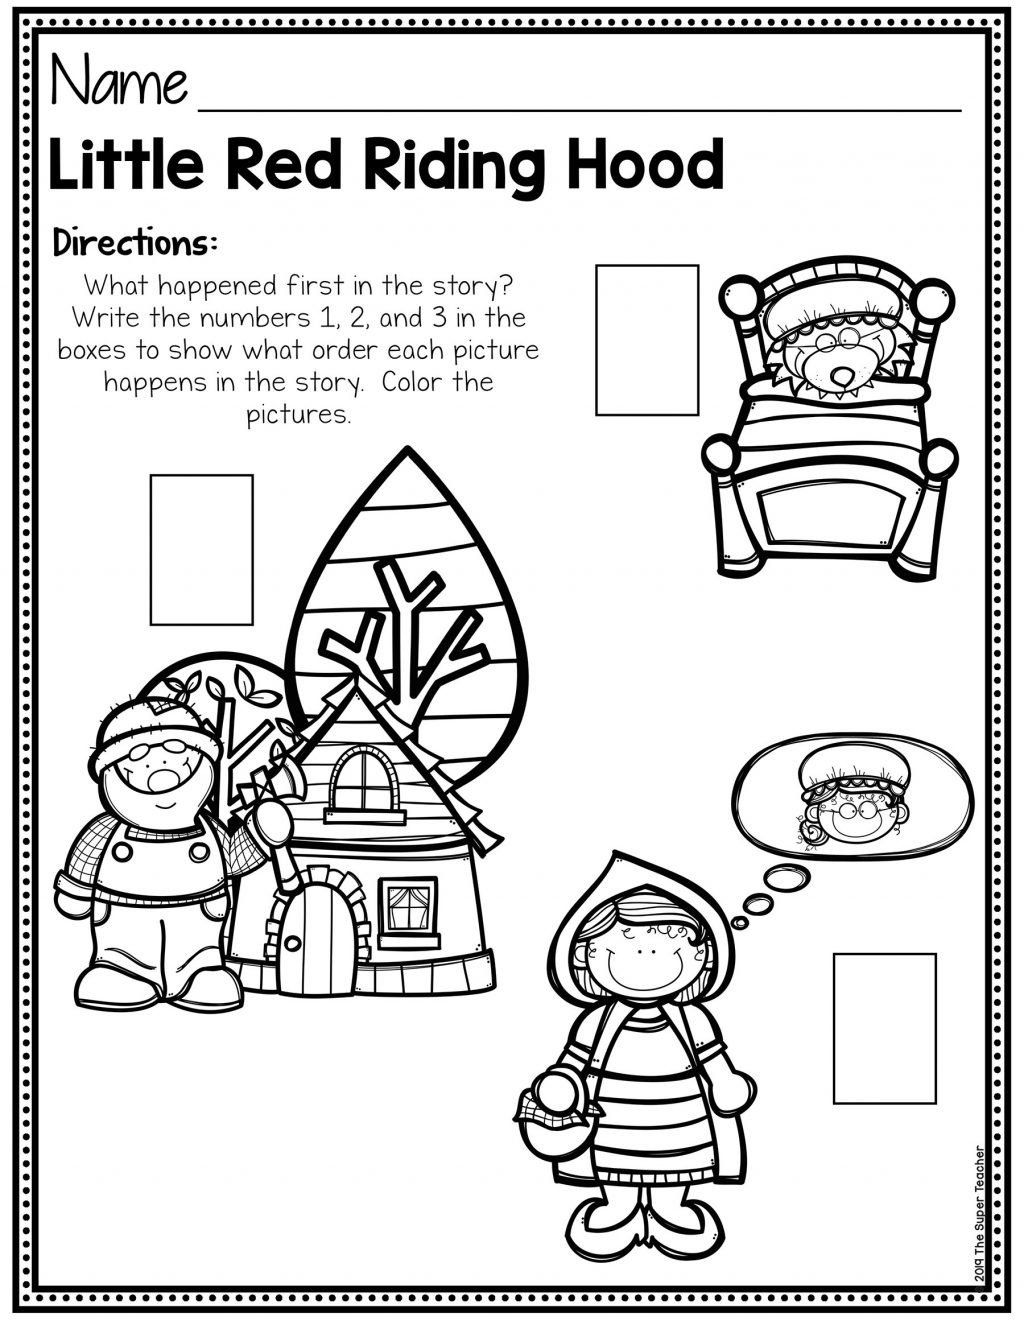 Internet Safety Worksheets Printable Worksheet Ideas Times